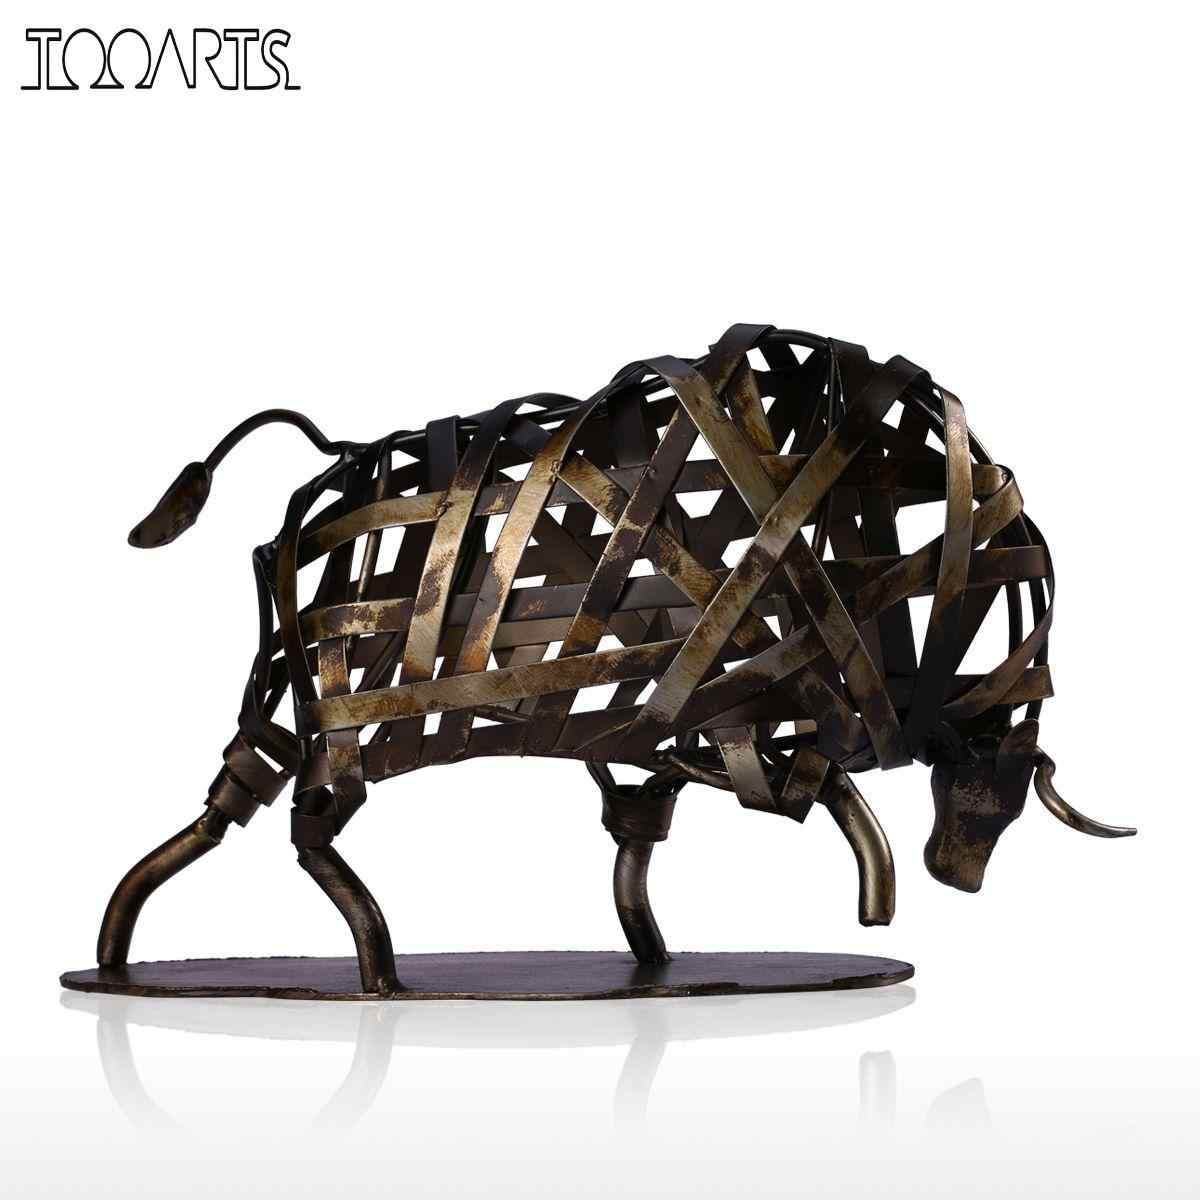 Tooarts Metal Animal Figurine Iron Braided Cattle Vintage Home Decor Handmade Animal Crafts Accessories Gift Bull Sculpture